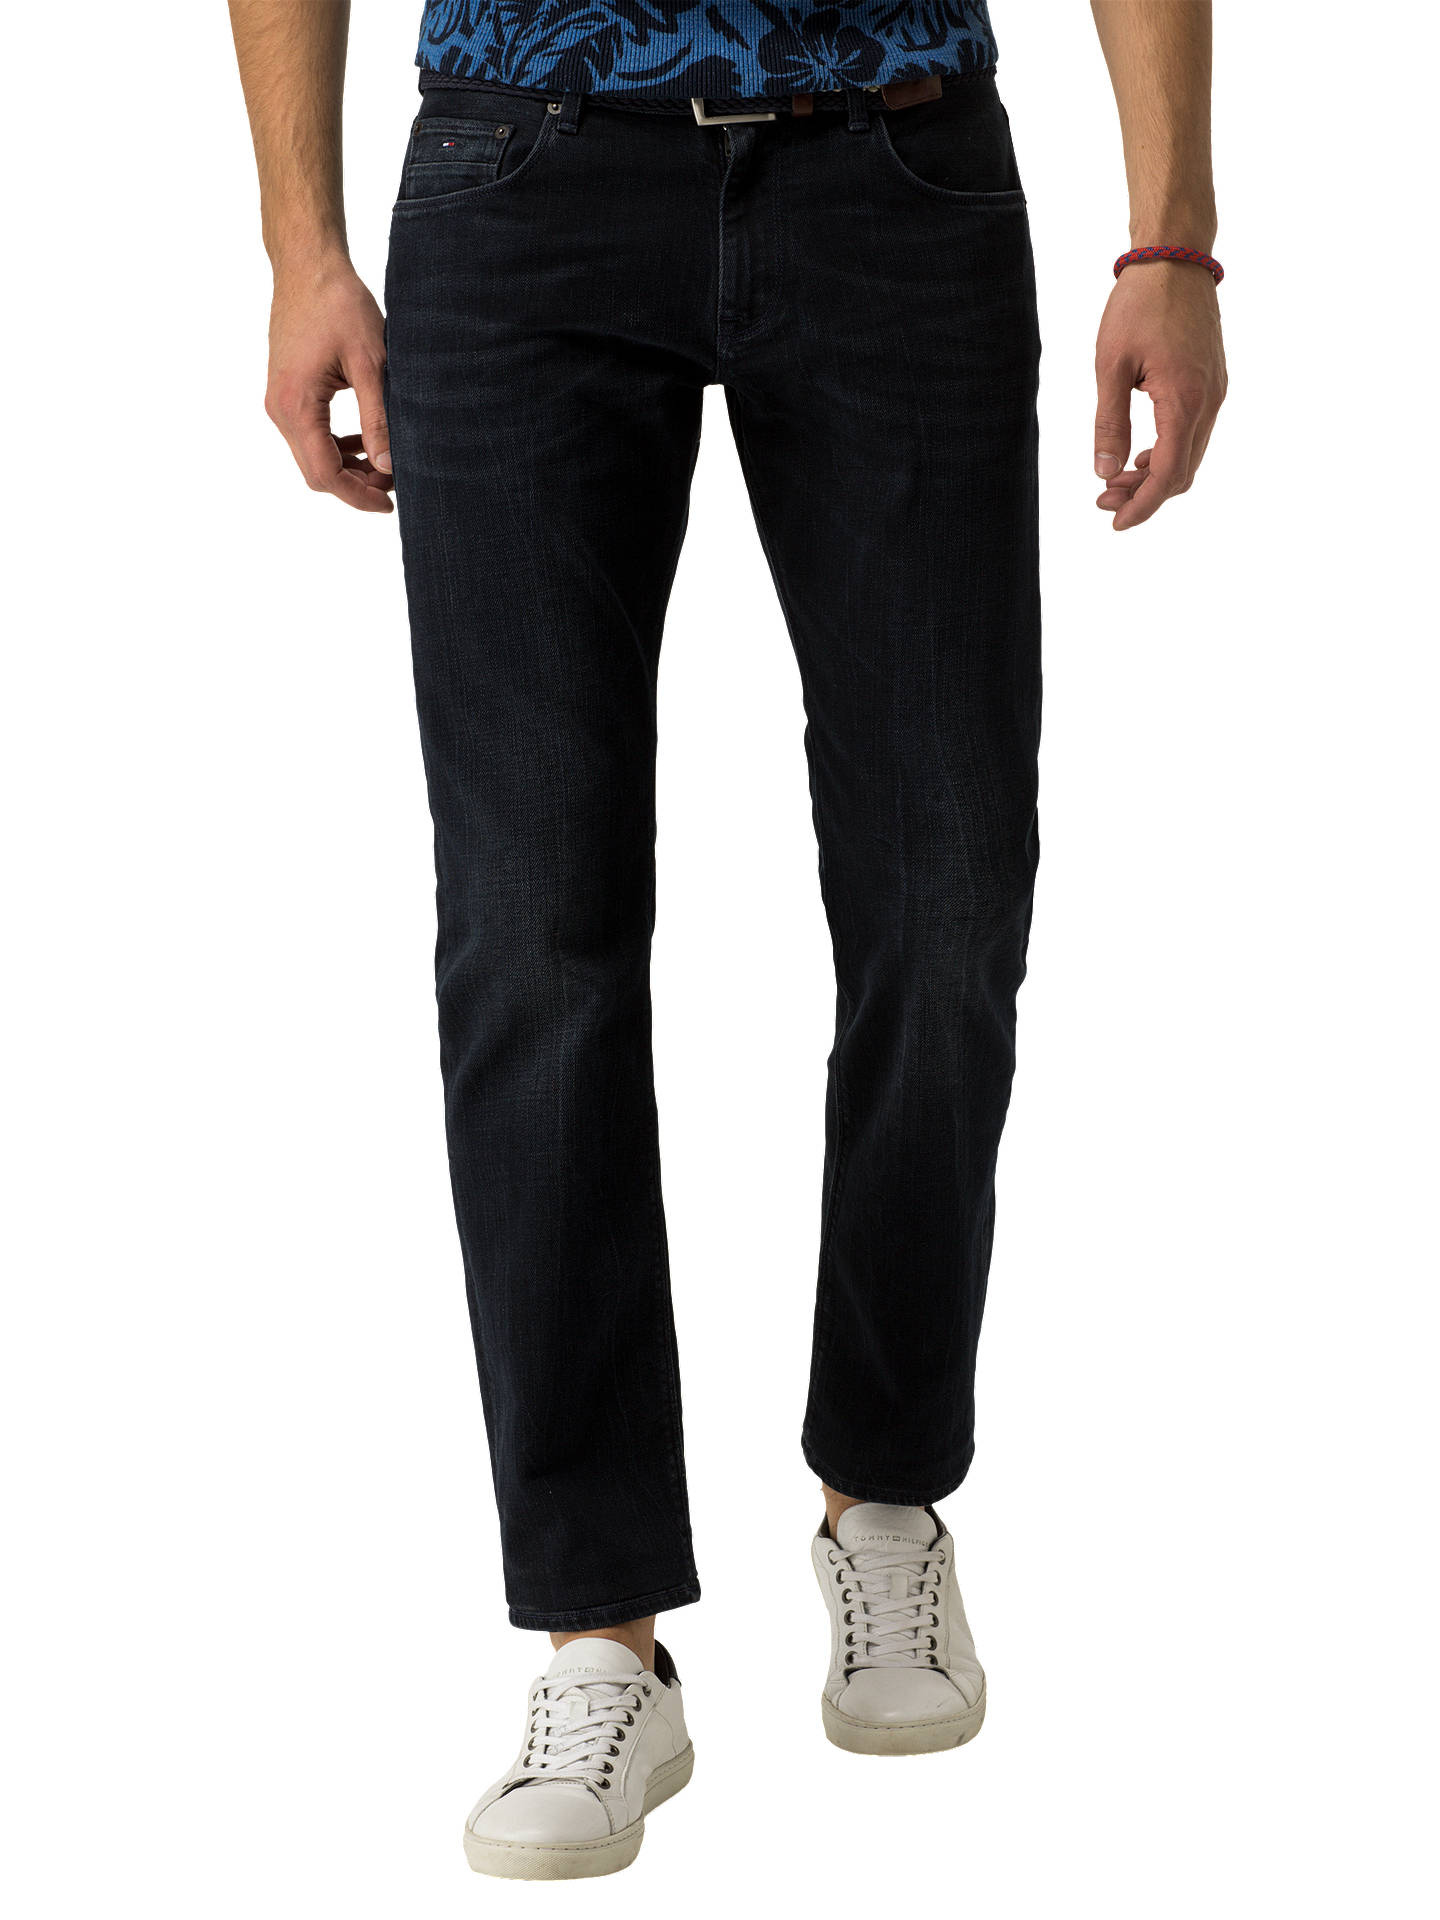 734d9937 Buy Tommy Hilfiger Denton Straight Jeans, Dark Clean Rinse, 30R Online at  johnlewis.